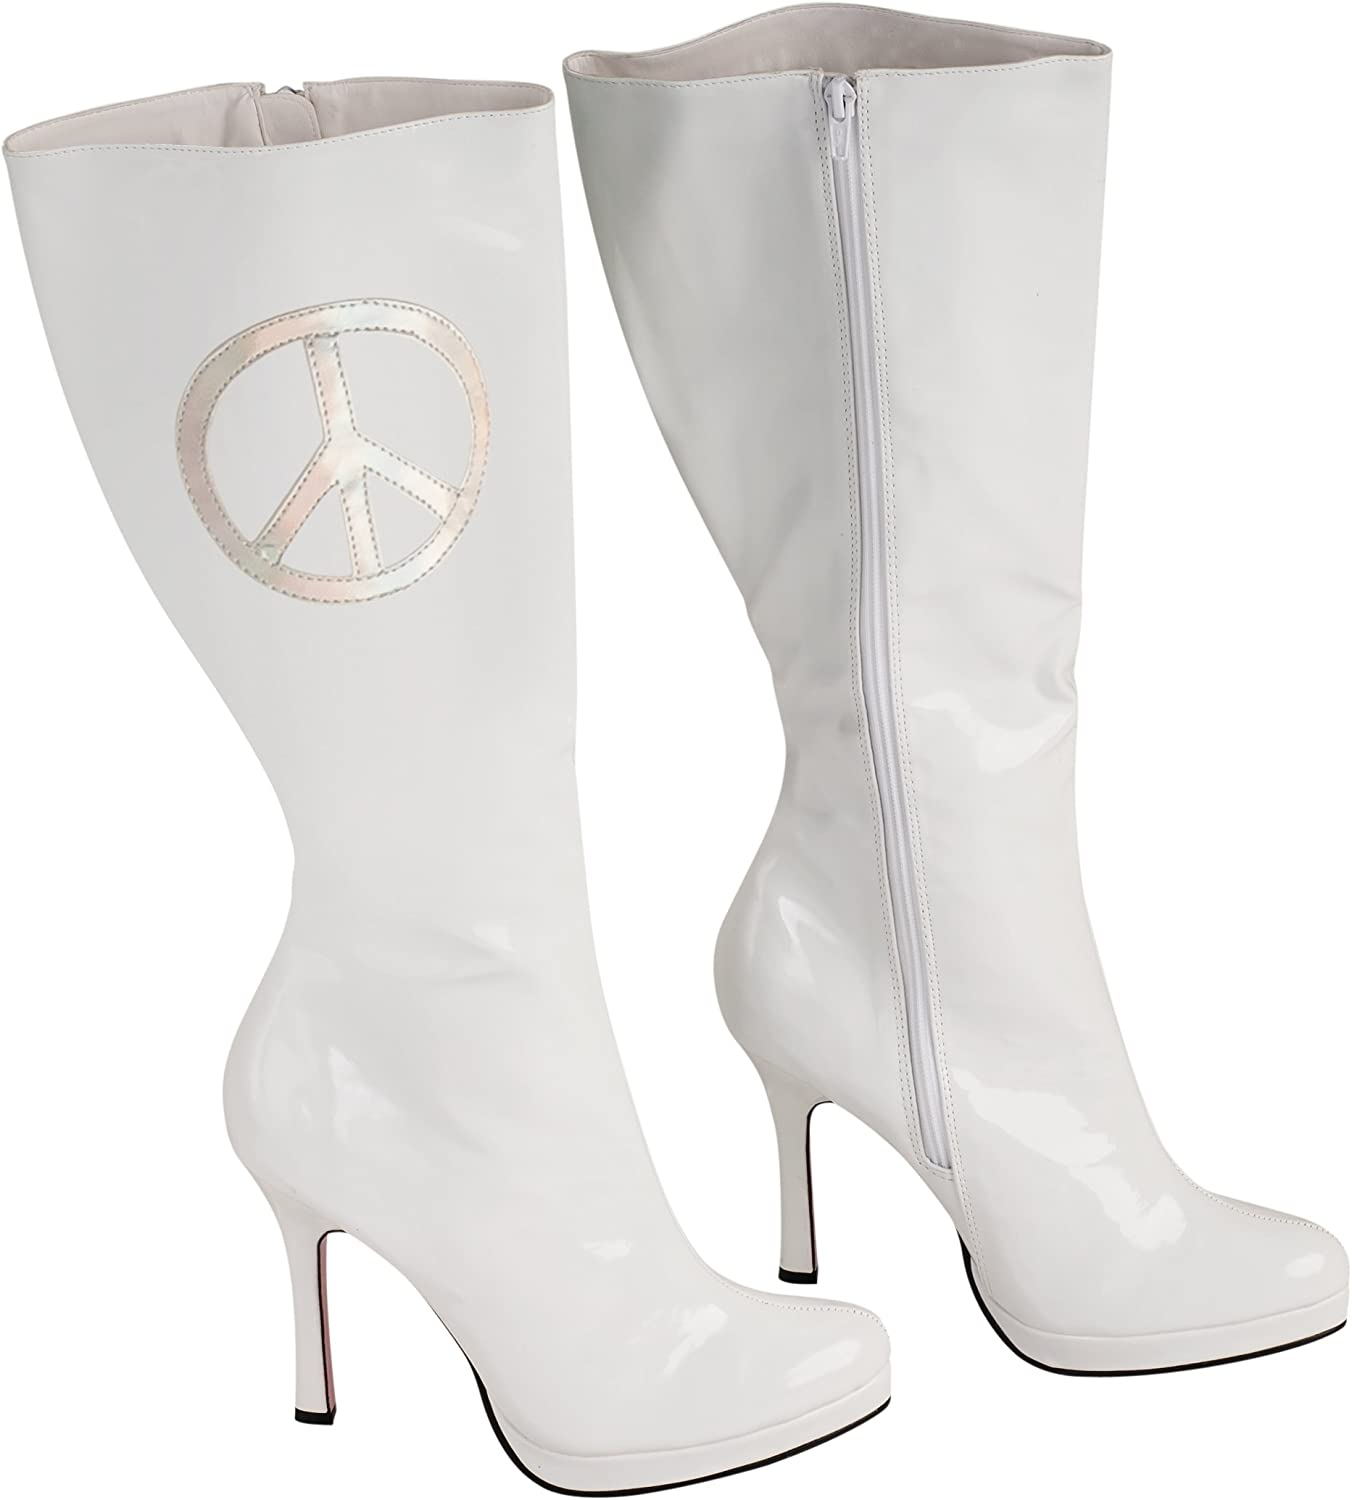 Secret Wishes Go-Go Boots